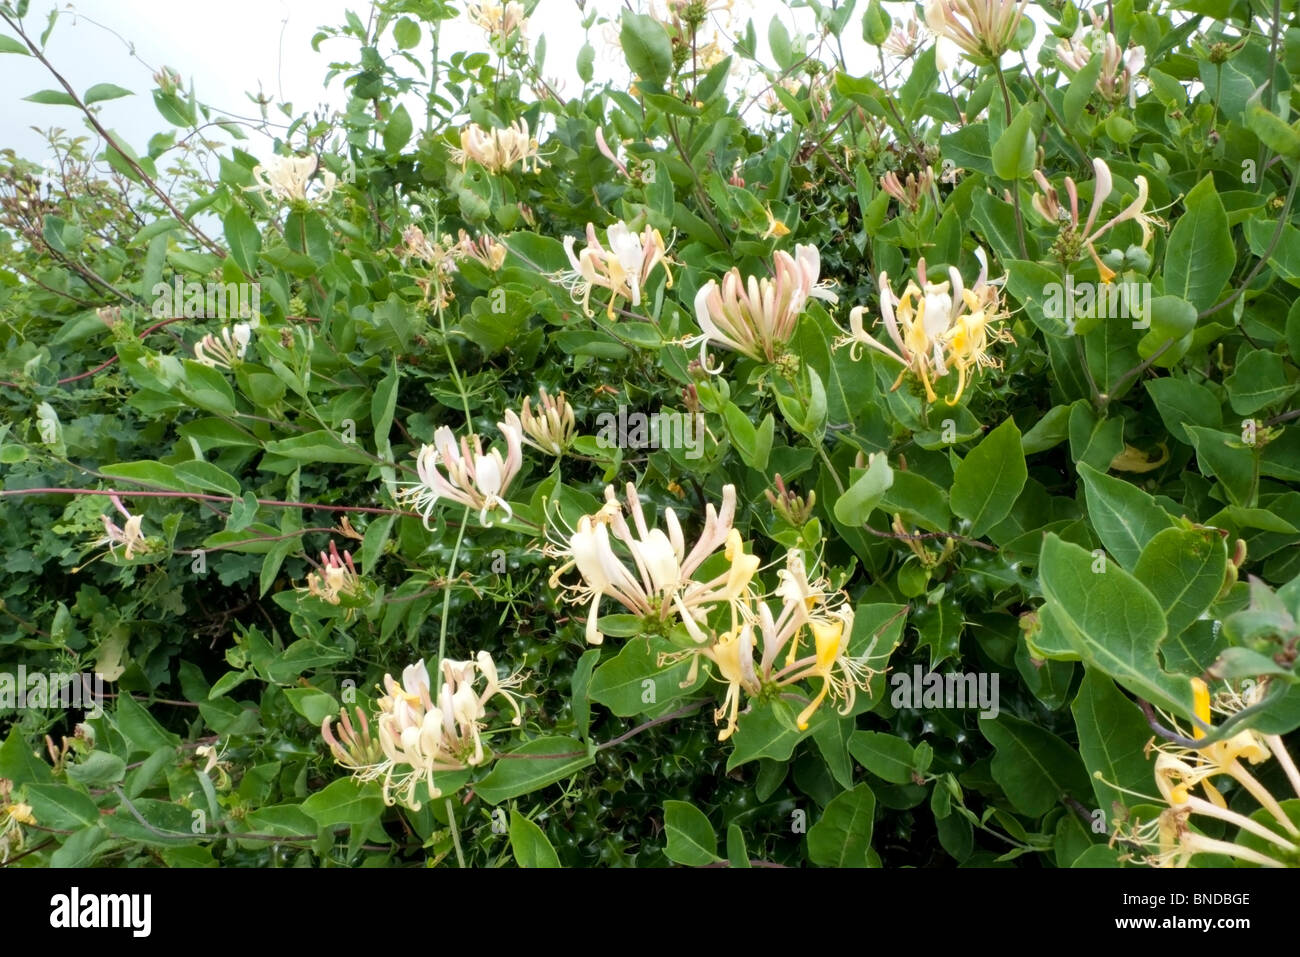 Wild honeysuckle in bloom flowering growing in a hedgerow in the countryside near Llandovery Carmarthenshire  Wales - Stock Image